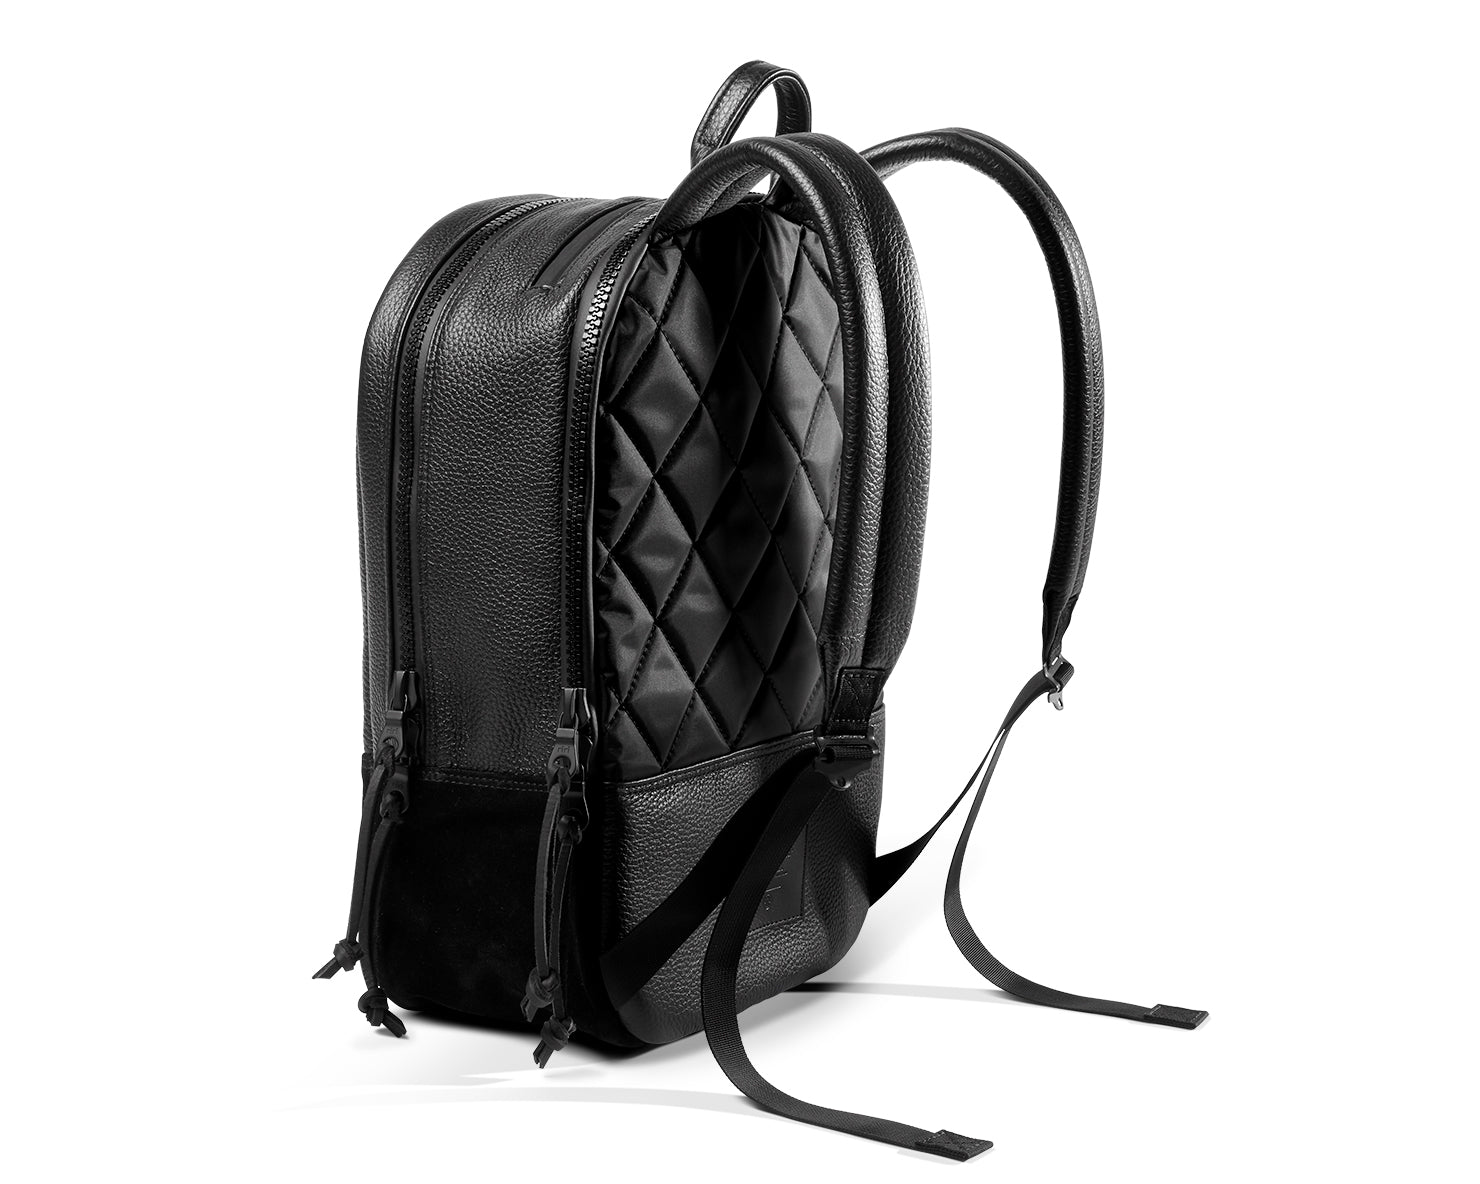 UTILITY MINI DAYPACK | KILLSPENCER® - Black Leather